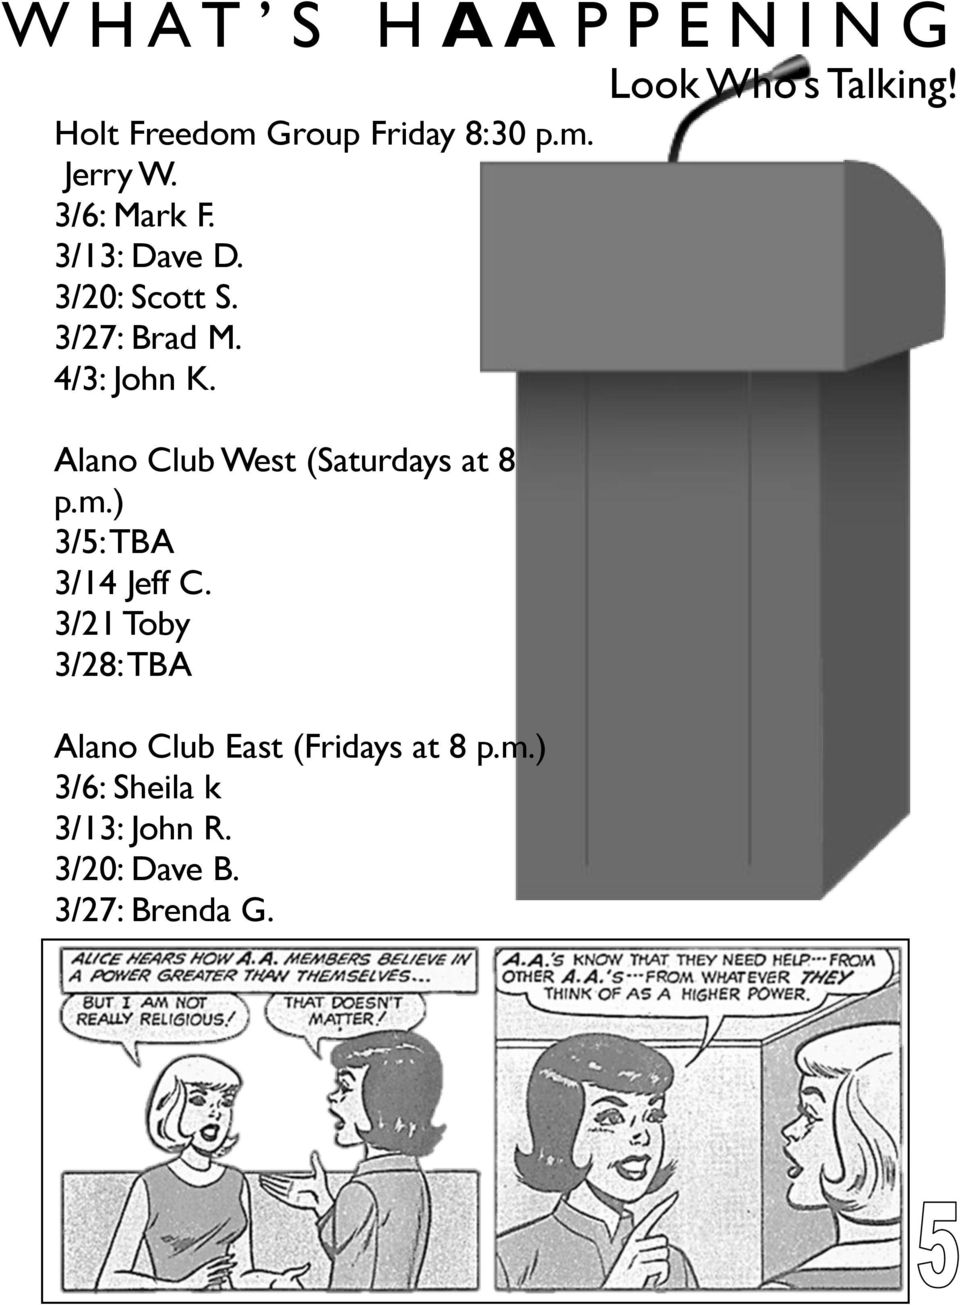 Alano Club West (Saturdays at 8 p.m.) 3/5: TBA 3/14 Jeff C.